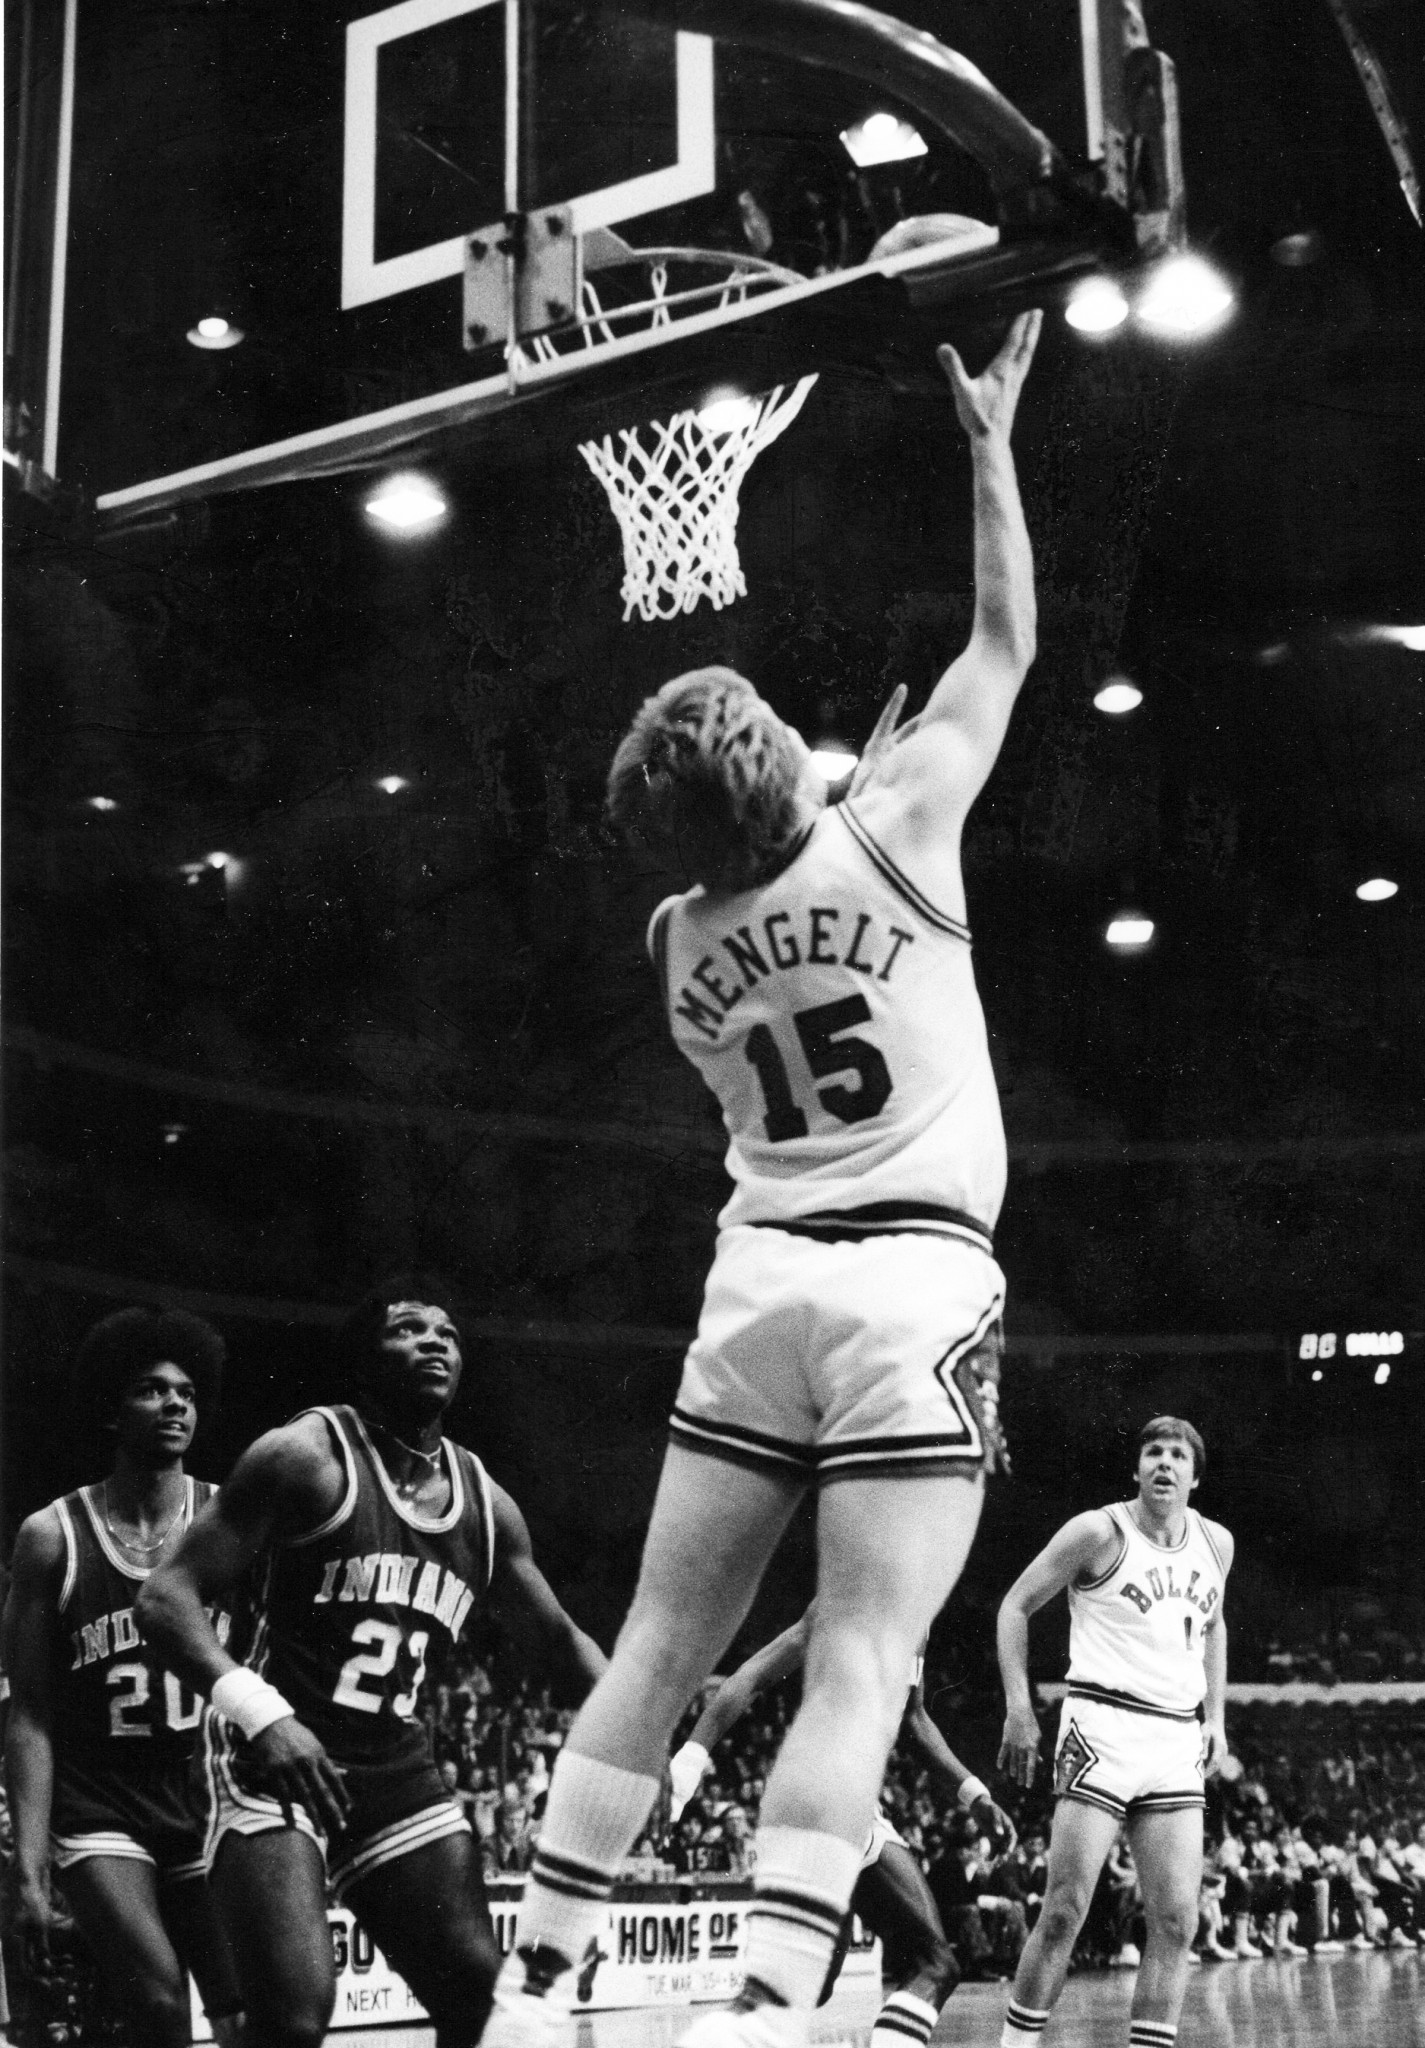 1970s and the Chicago Bulls – Chicago Bulls History